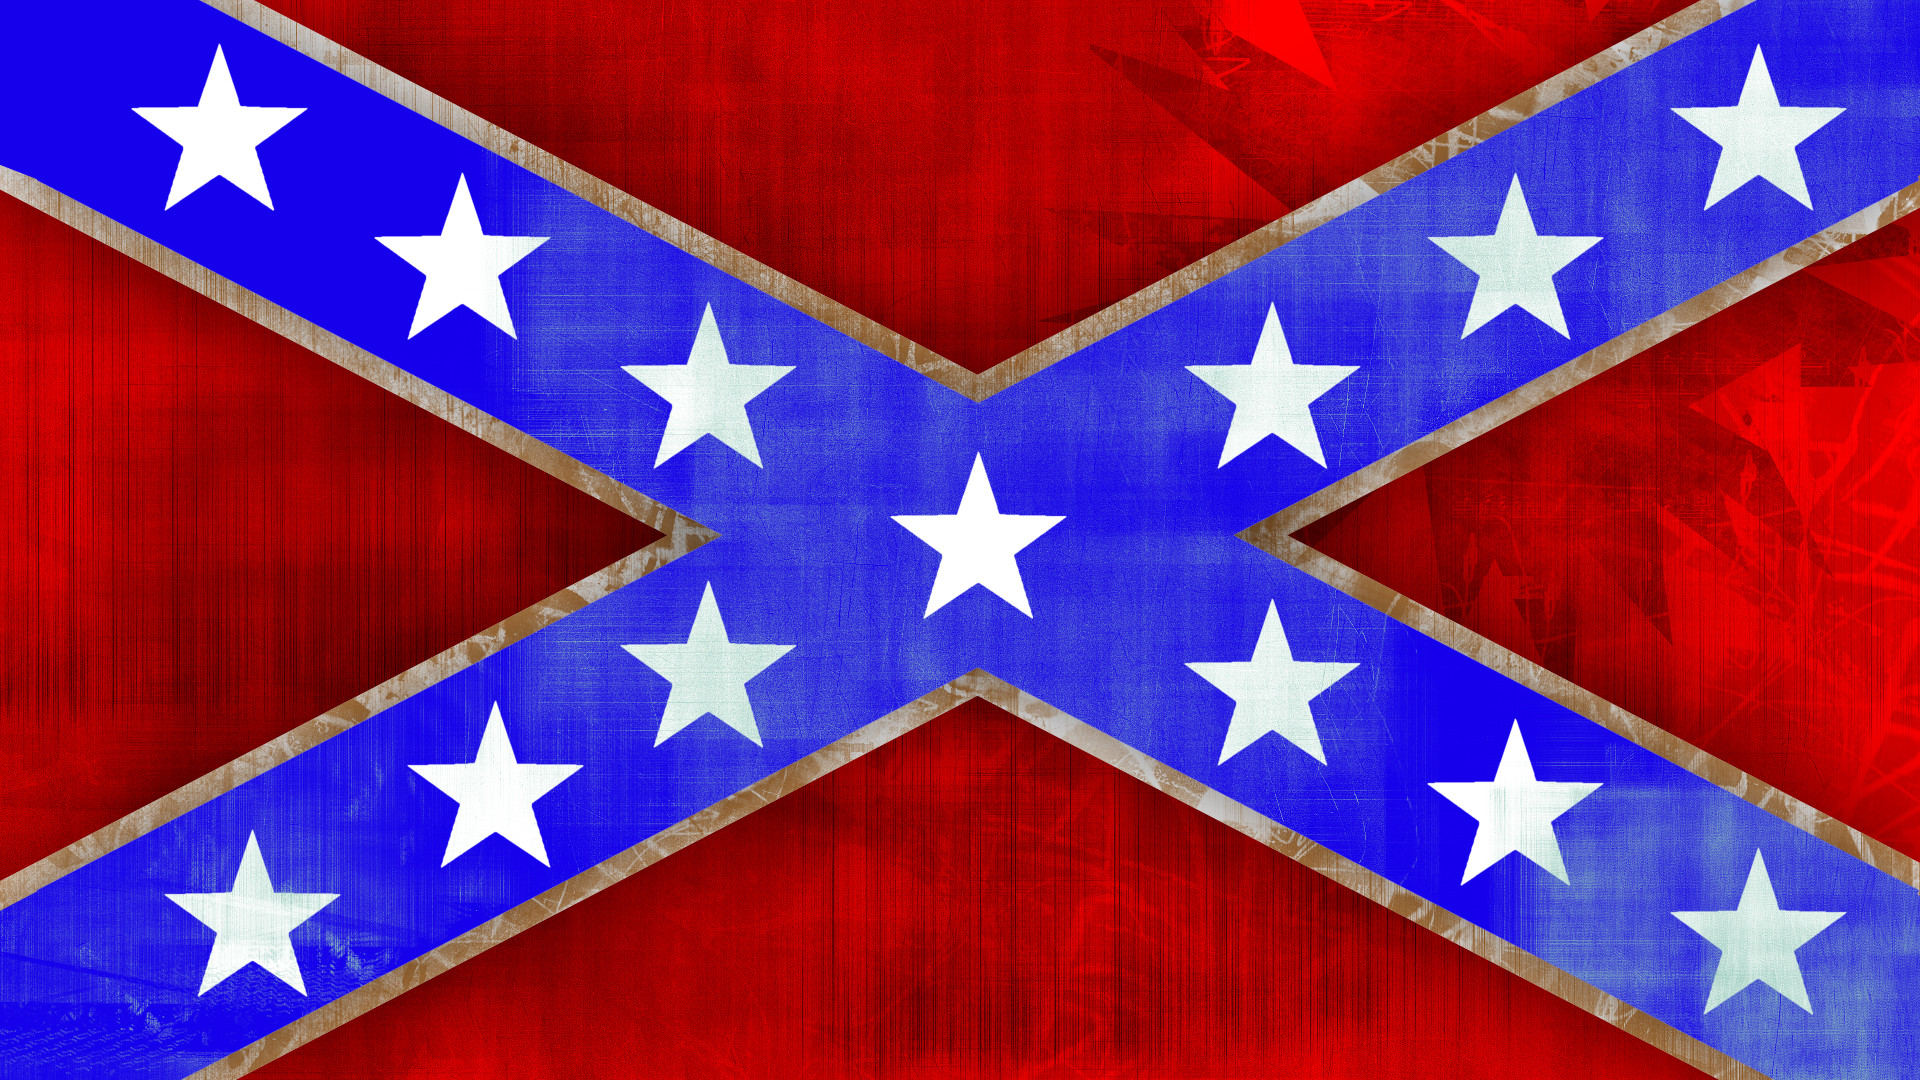 Cool Confederate Flag Wallpapers Images & Pictures – Becuo